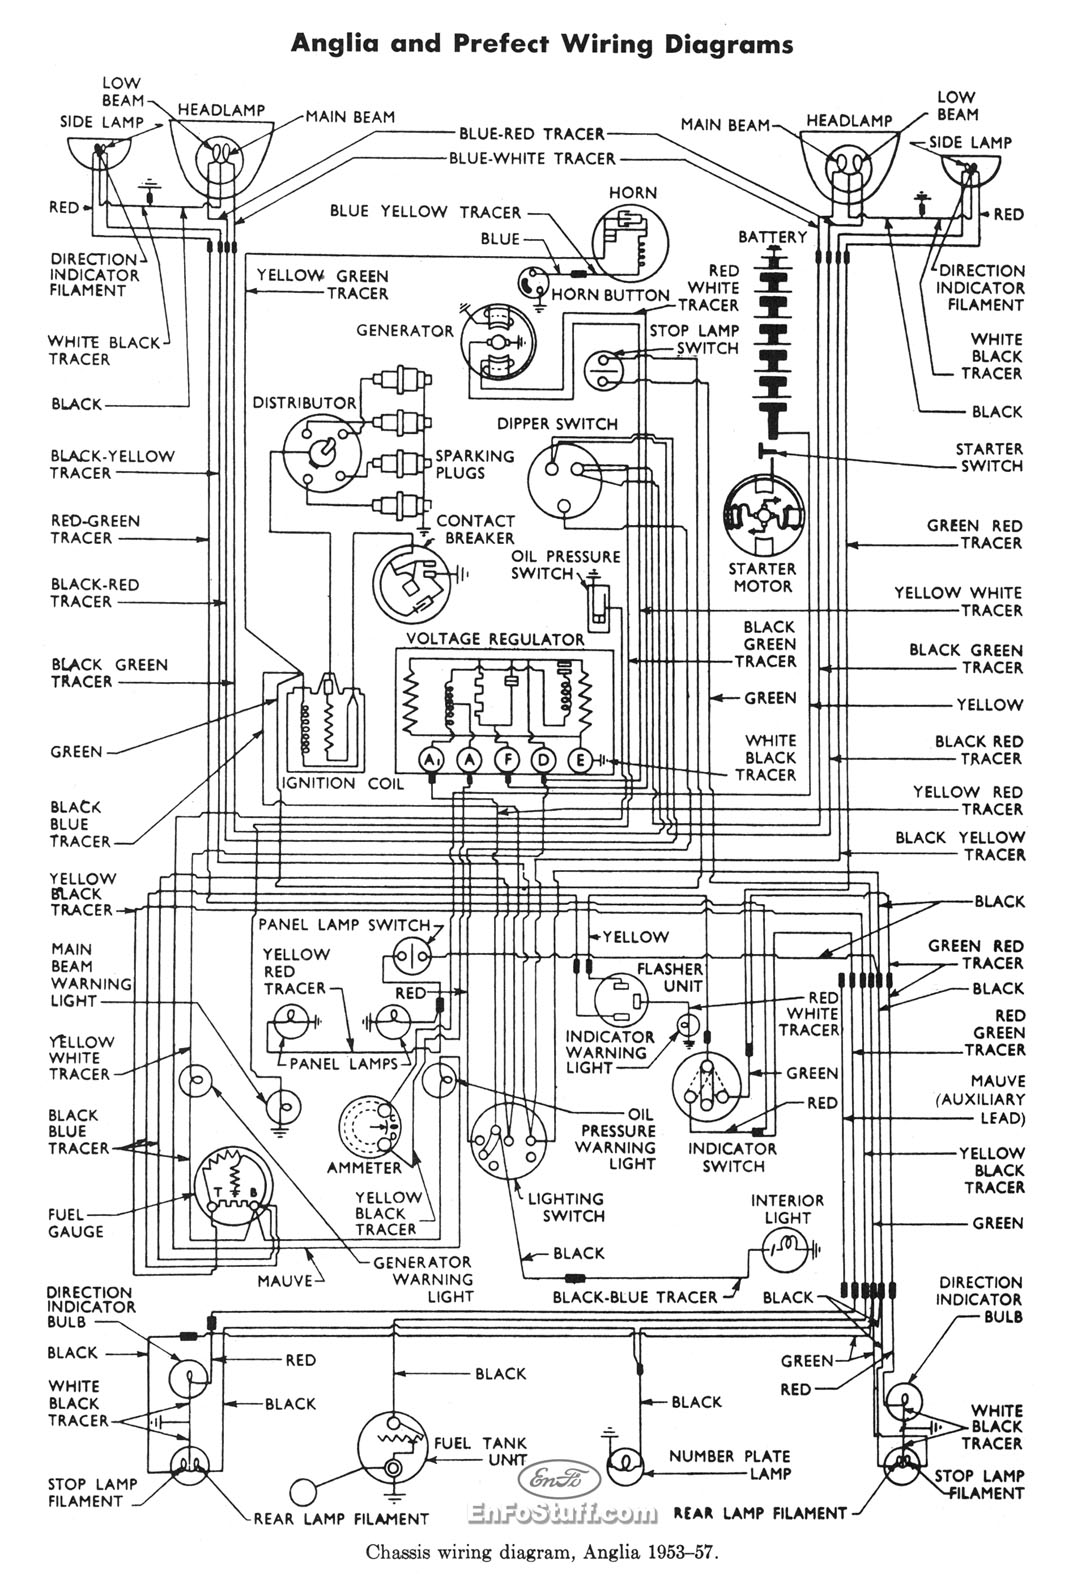 Ford 2600 Tractor Wiring Diagram from schematron.org